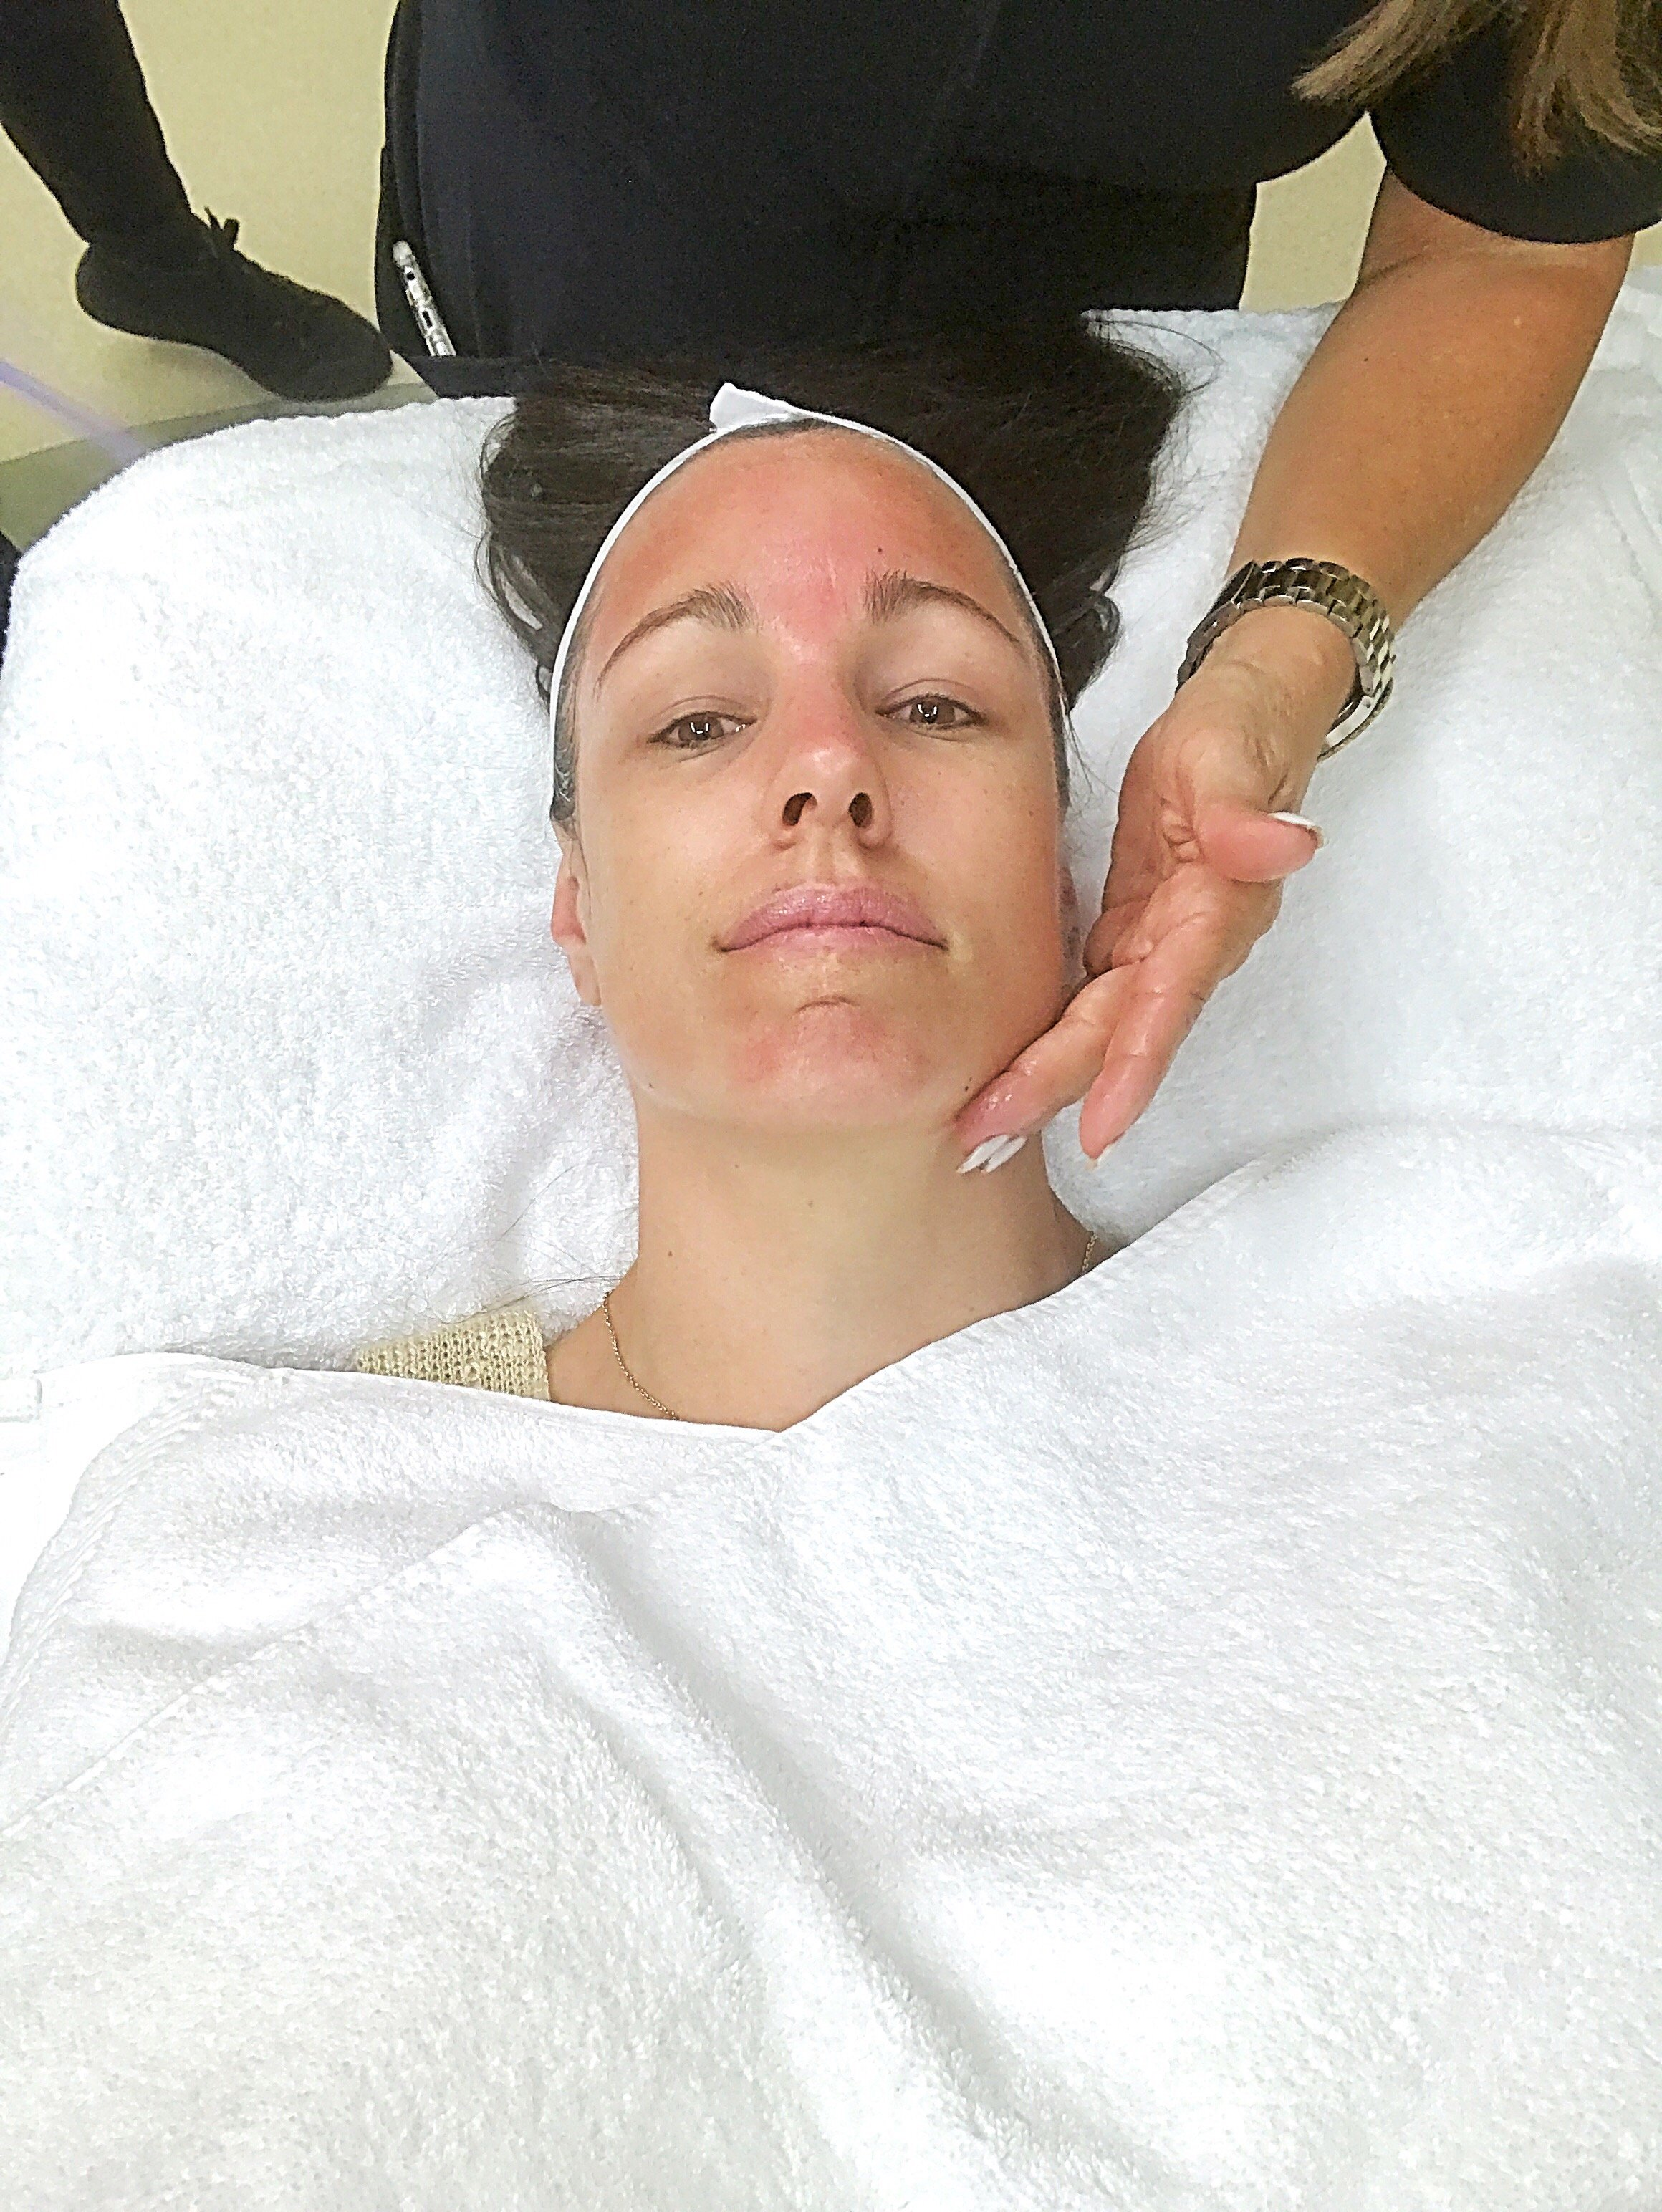 Blackhawk Plastic Surgery, Blackhawk Plastic Surgery review, hydrafacial,